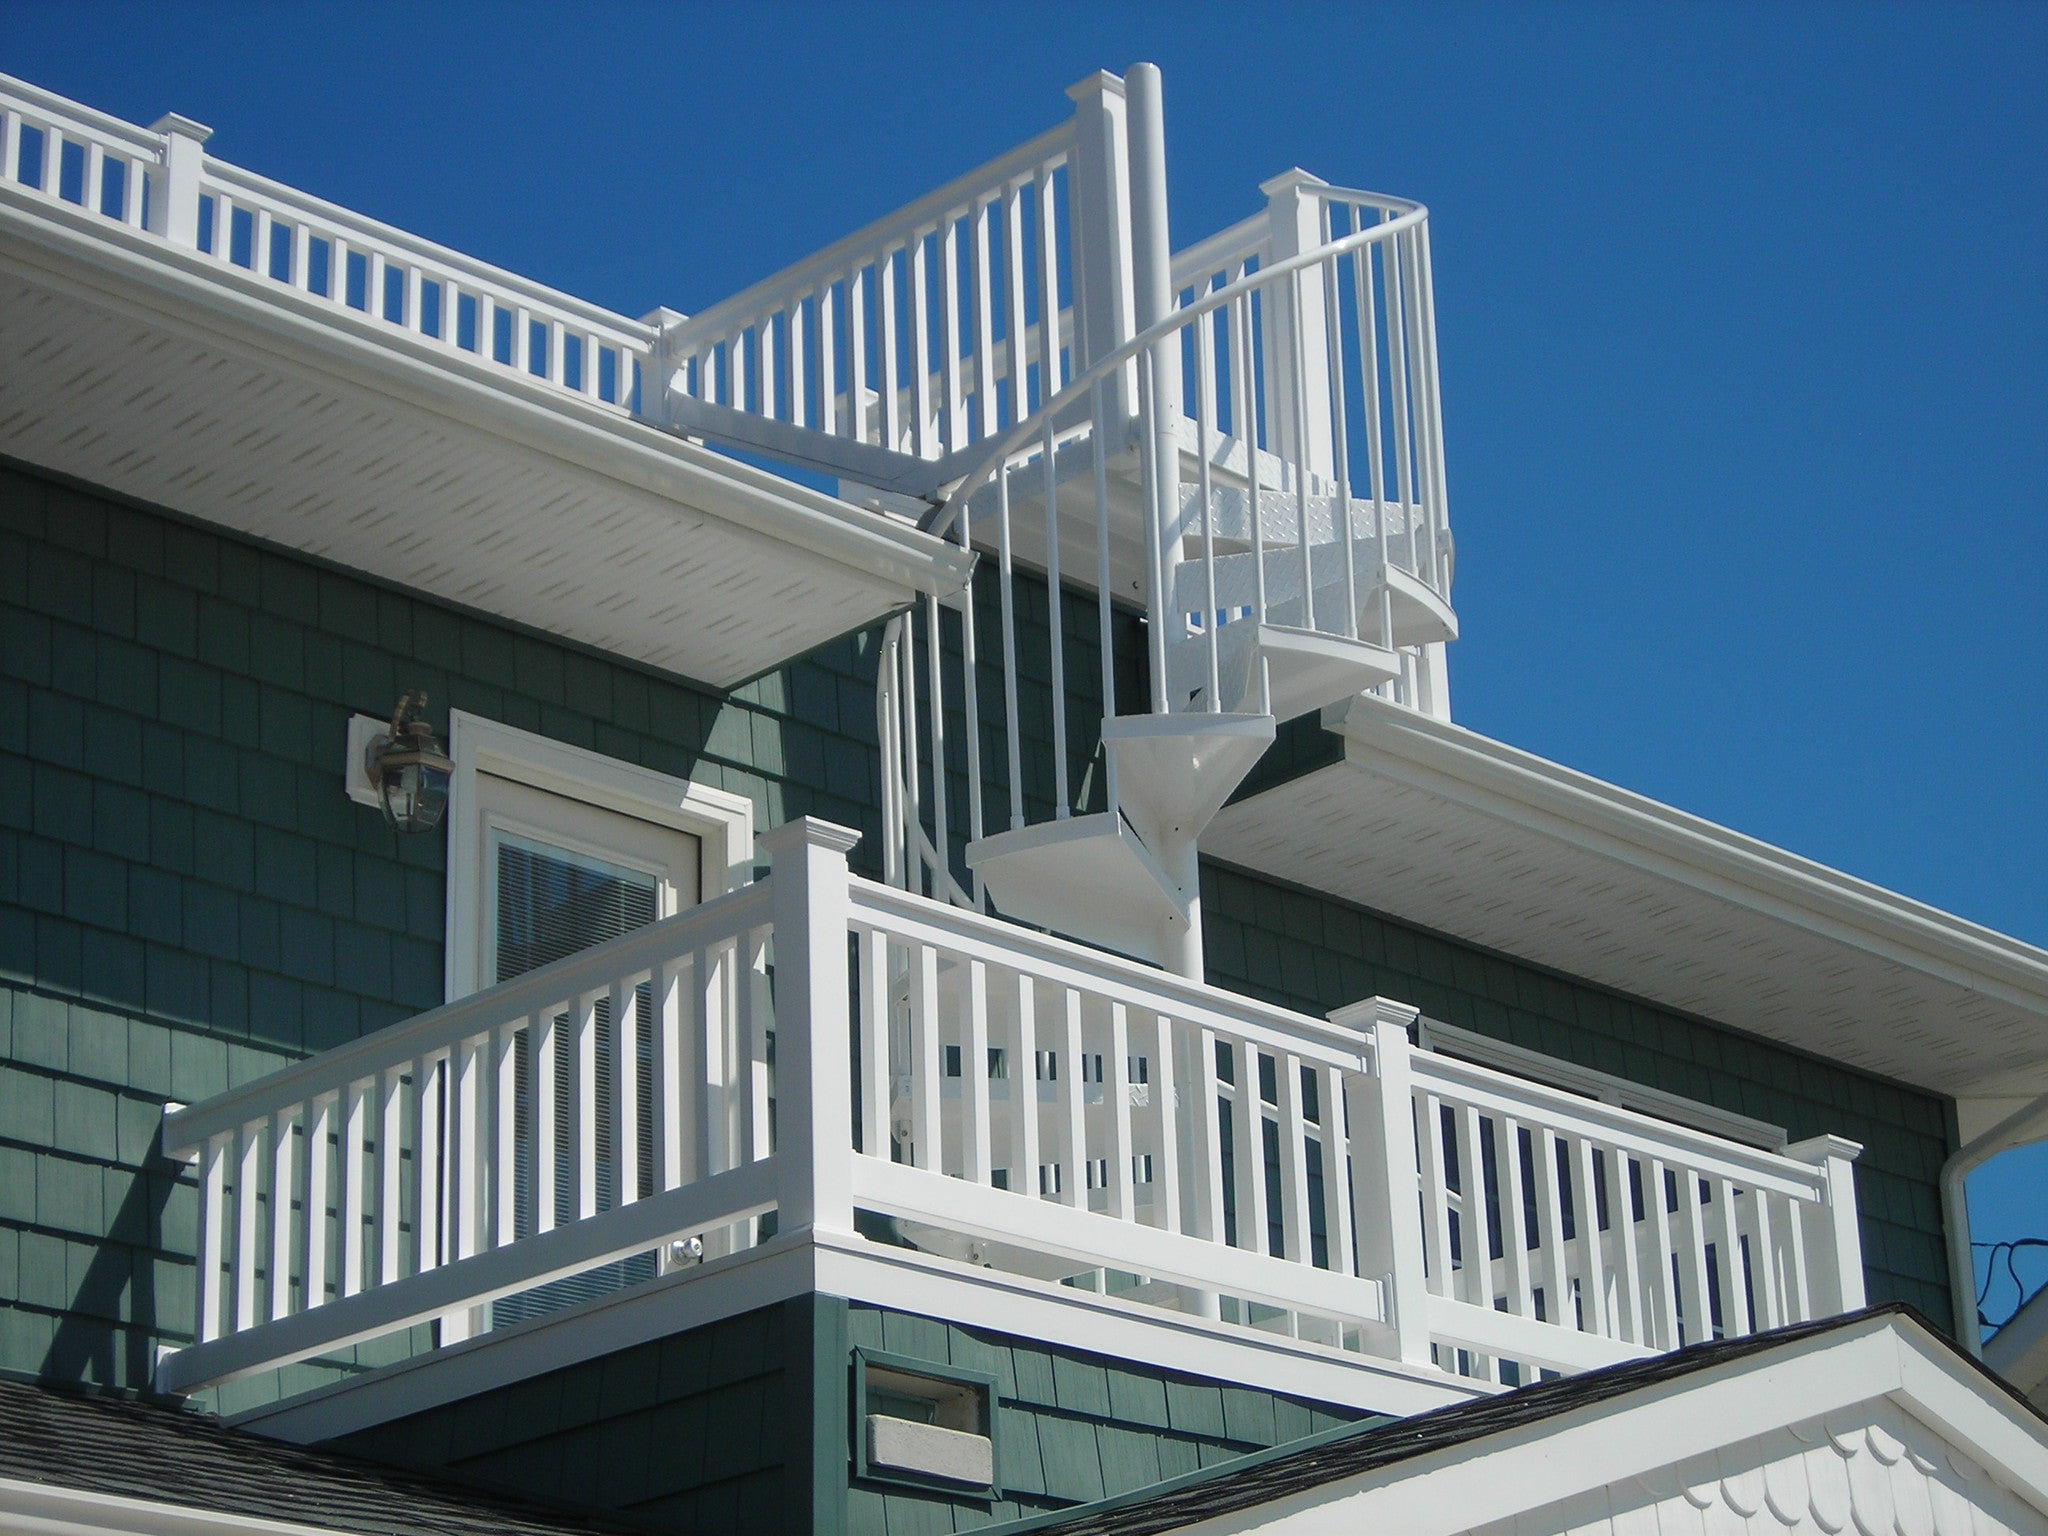 Vinyl Railing Kit with Square Balusters